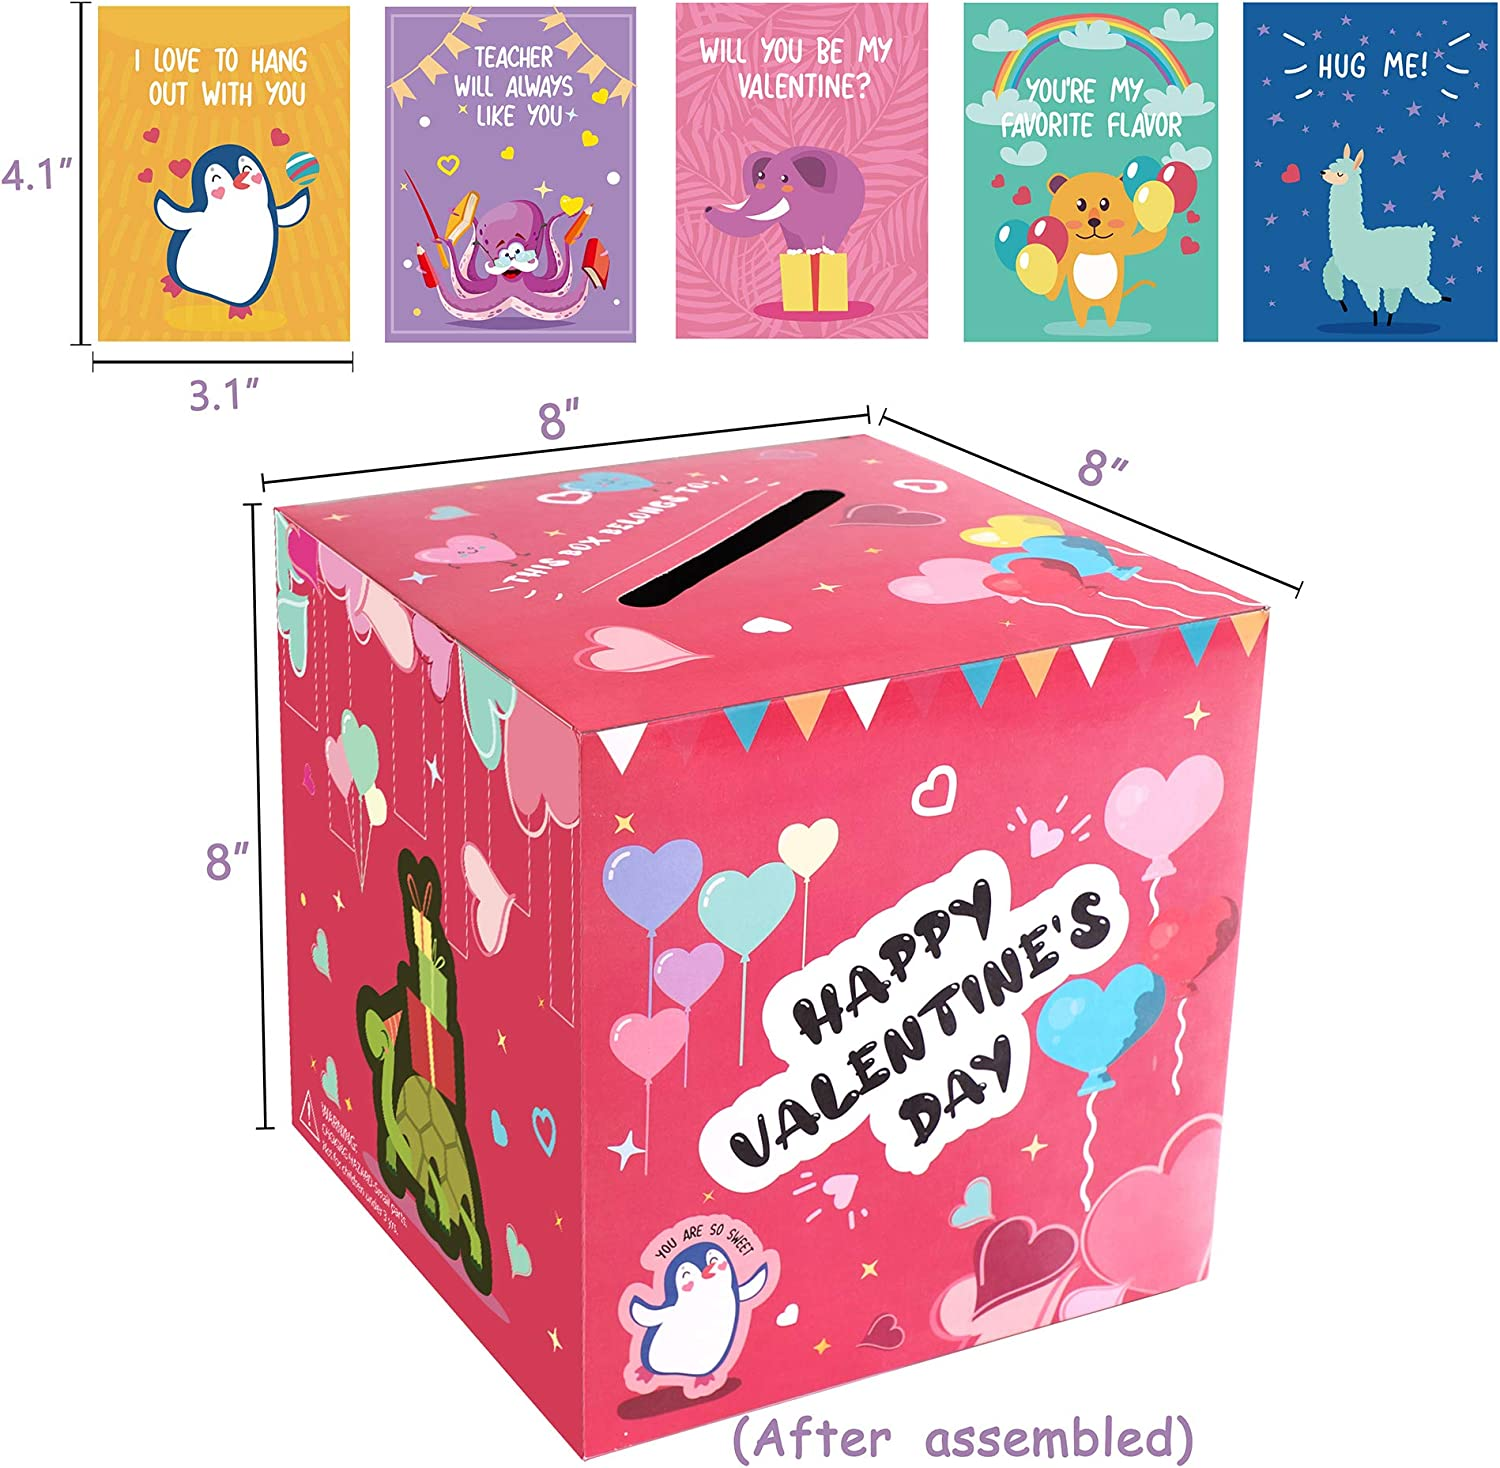 48 Stickers+8 Teacher Cards 32 Valentine Cards Valentines Boxes Mailbox for Kids-Valentines Day Cards for School Classroom Exchange Party Supplies 1 Box Assembly Needed